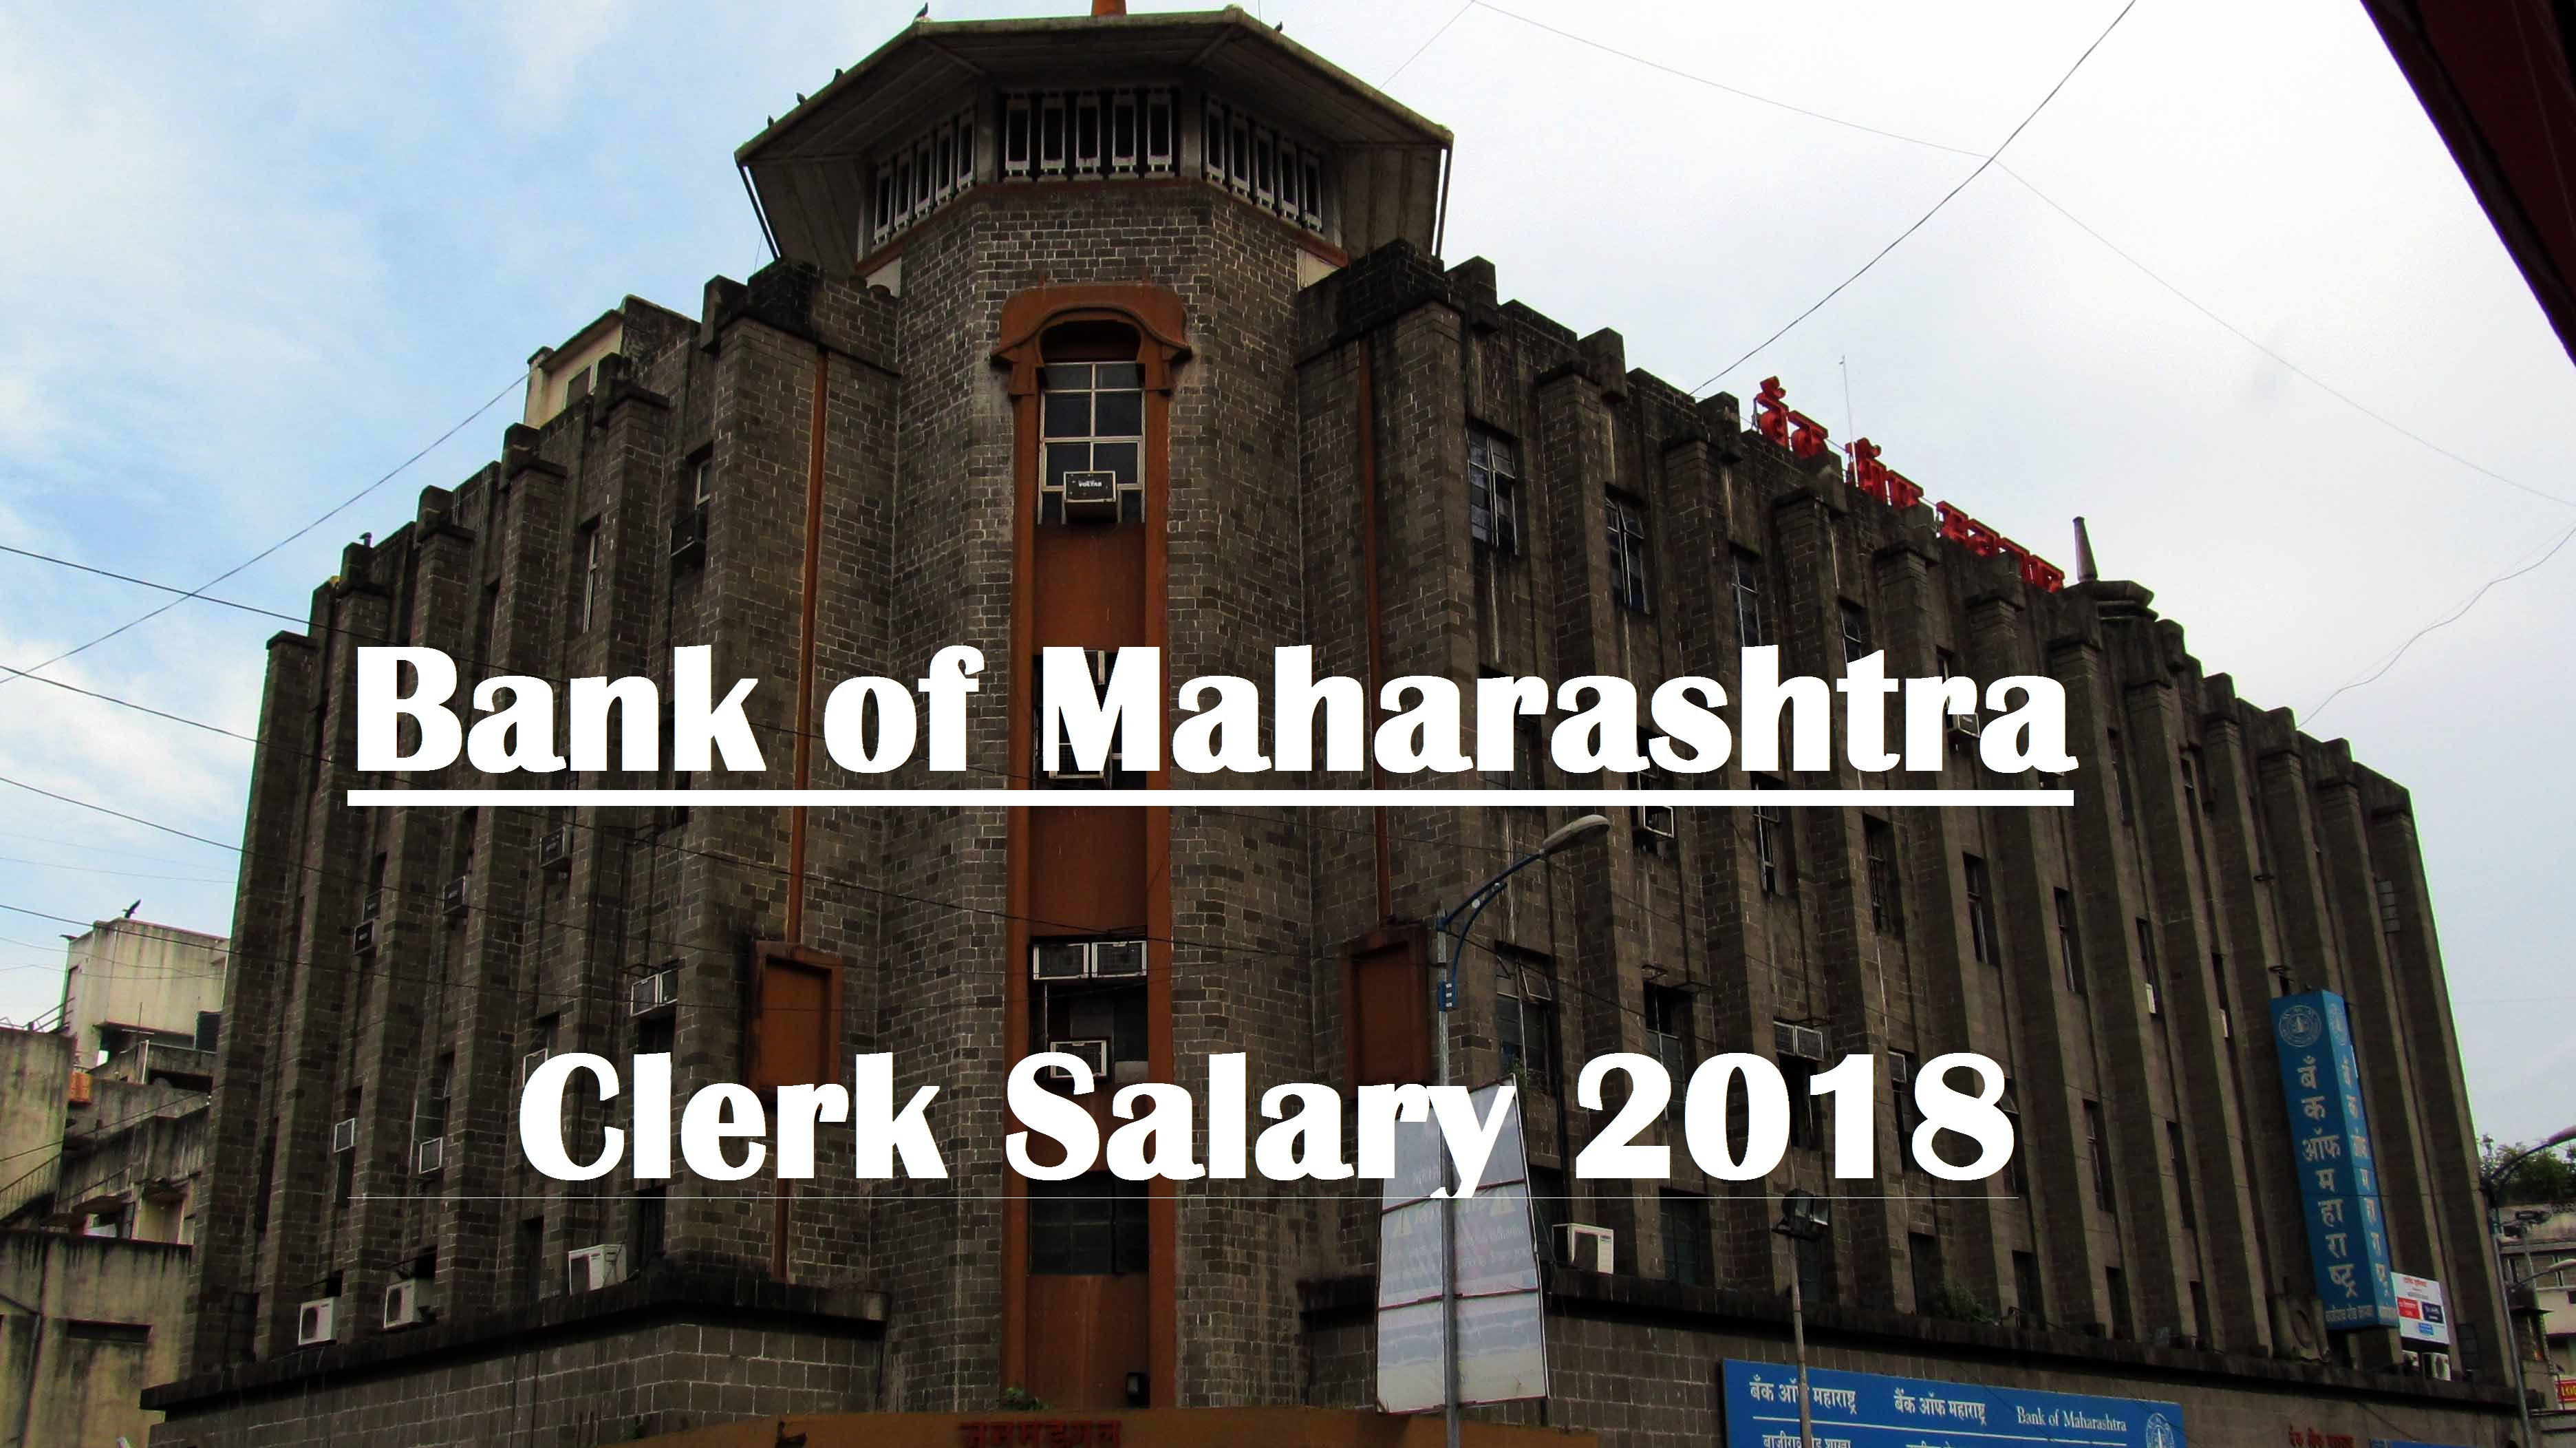 Bank of Maharashtra Clerk Salary 2018